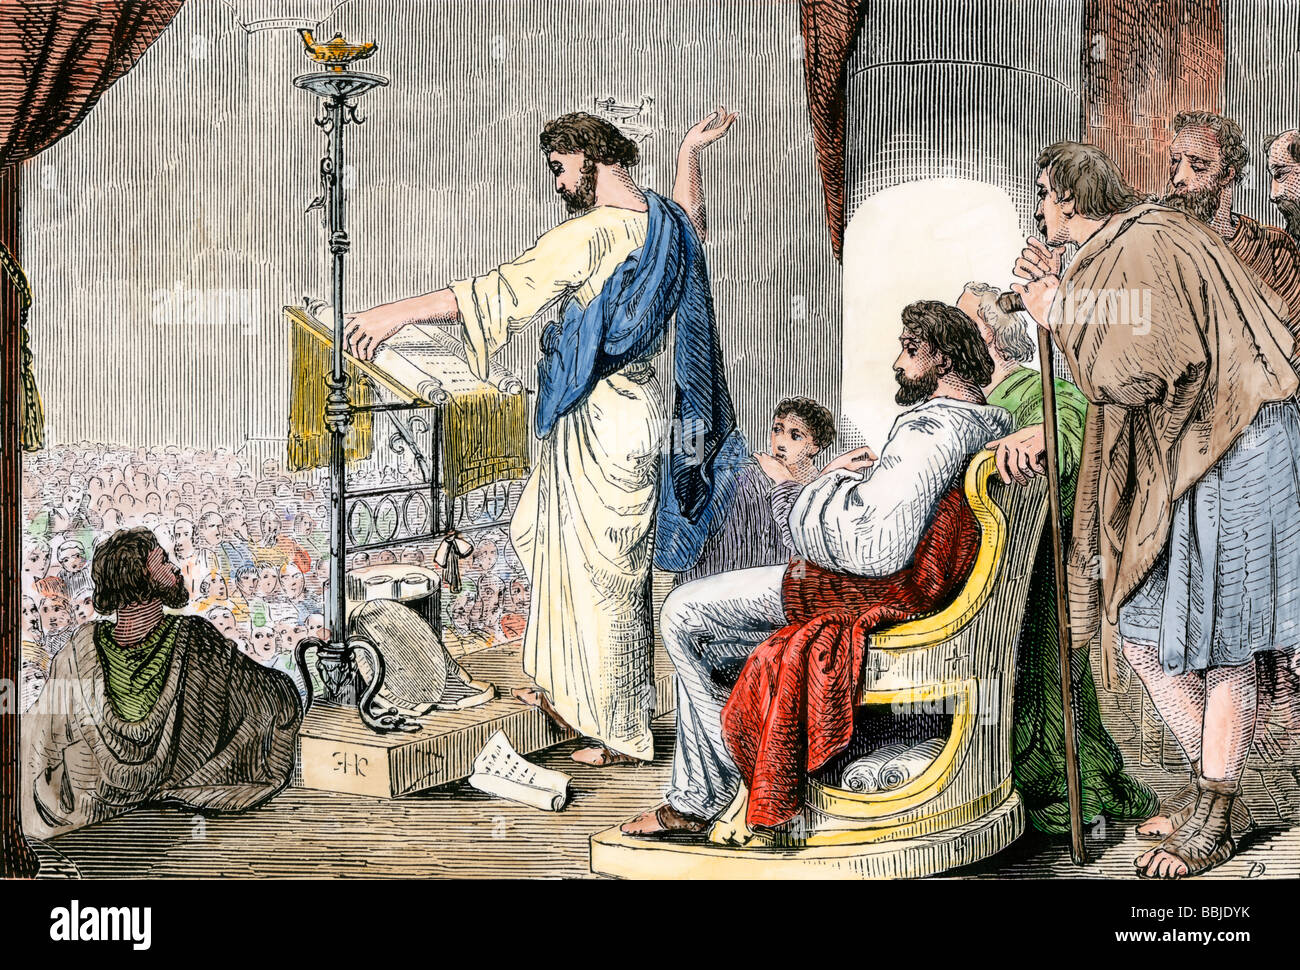 Apostles Paul and Barnabas preaching Christianity at Antioch. Hand-colored woodcut - Stock Image